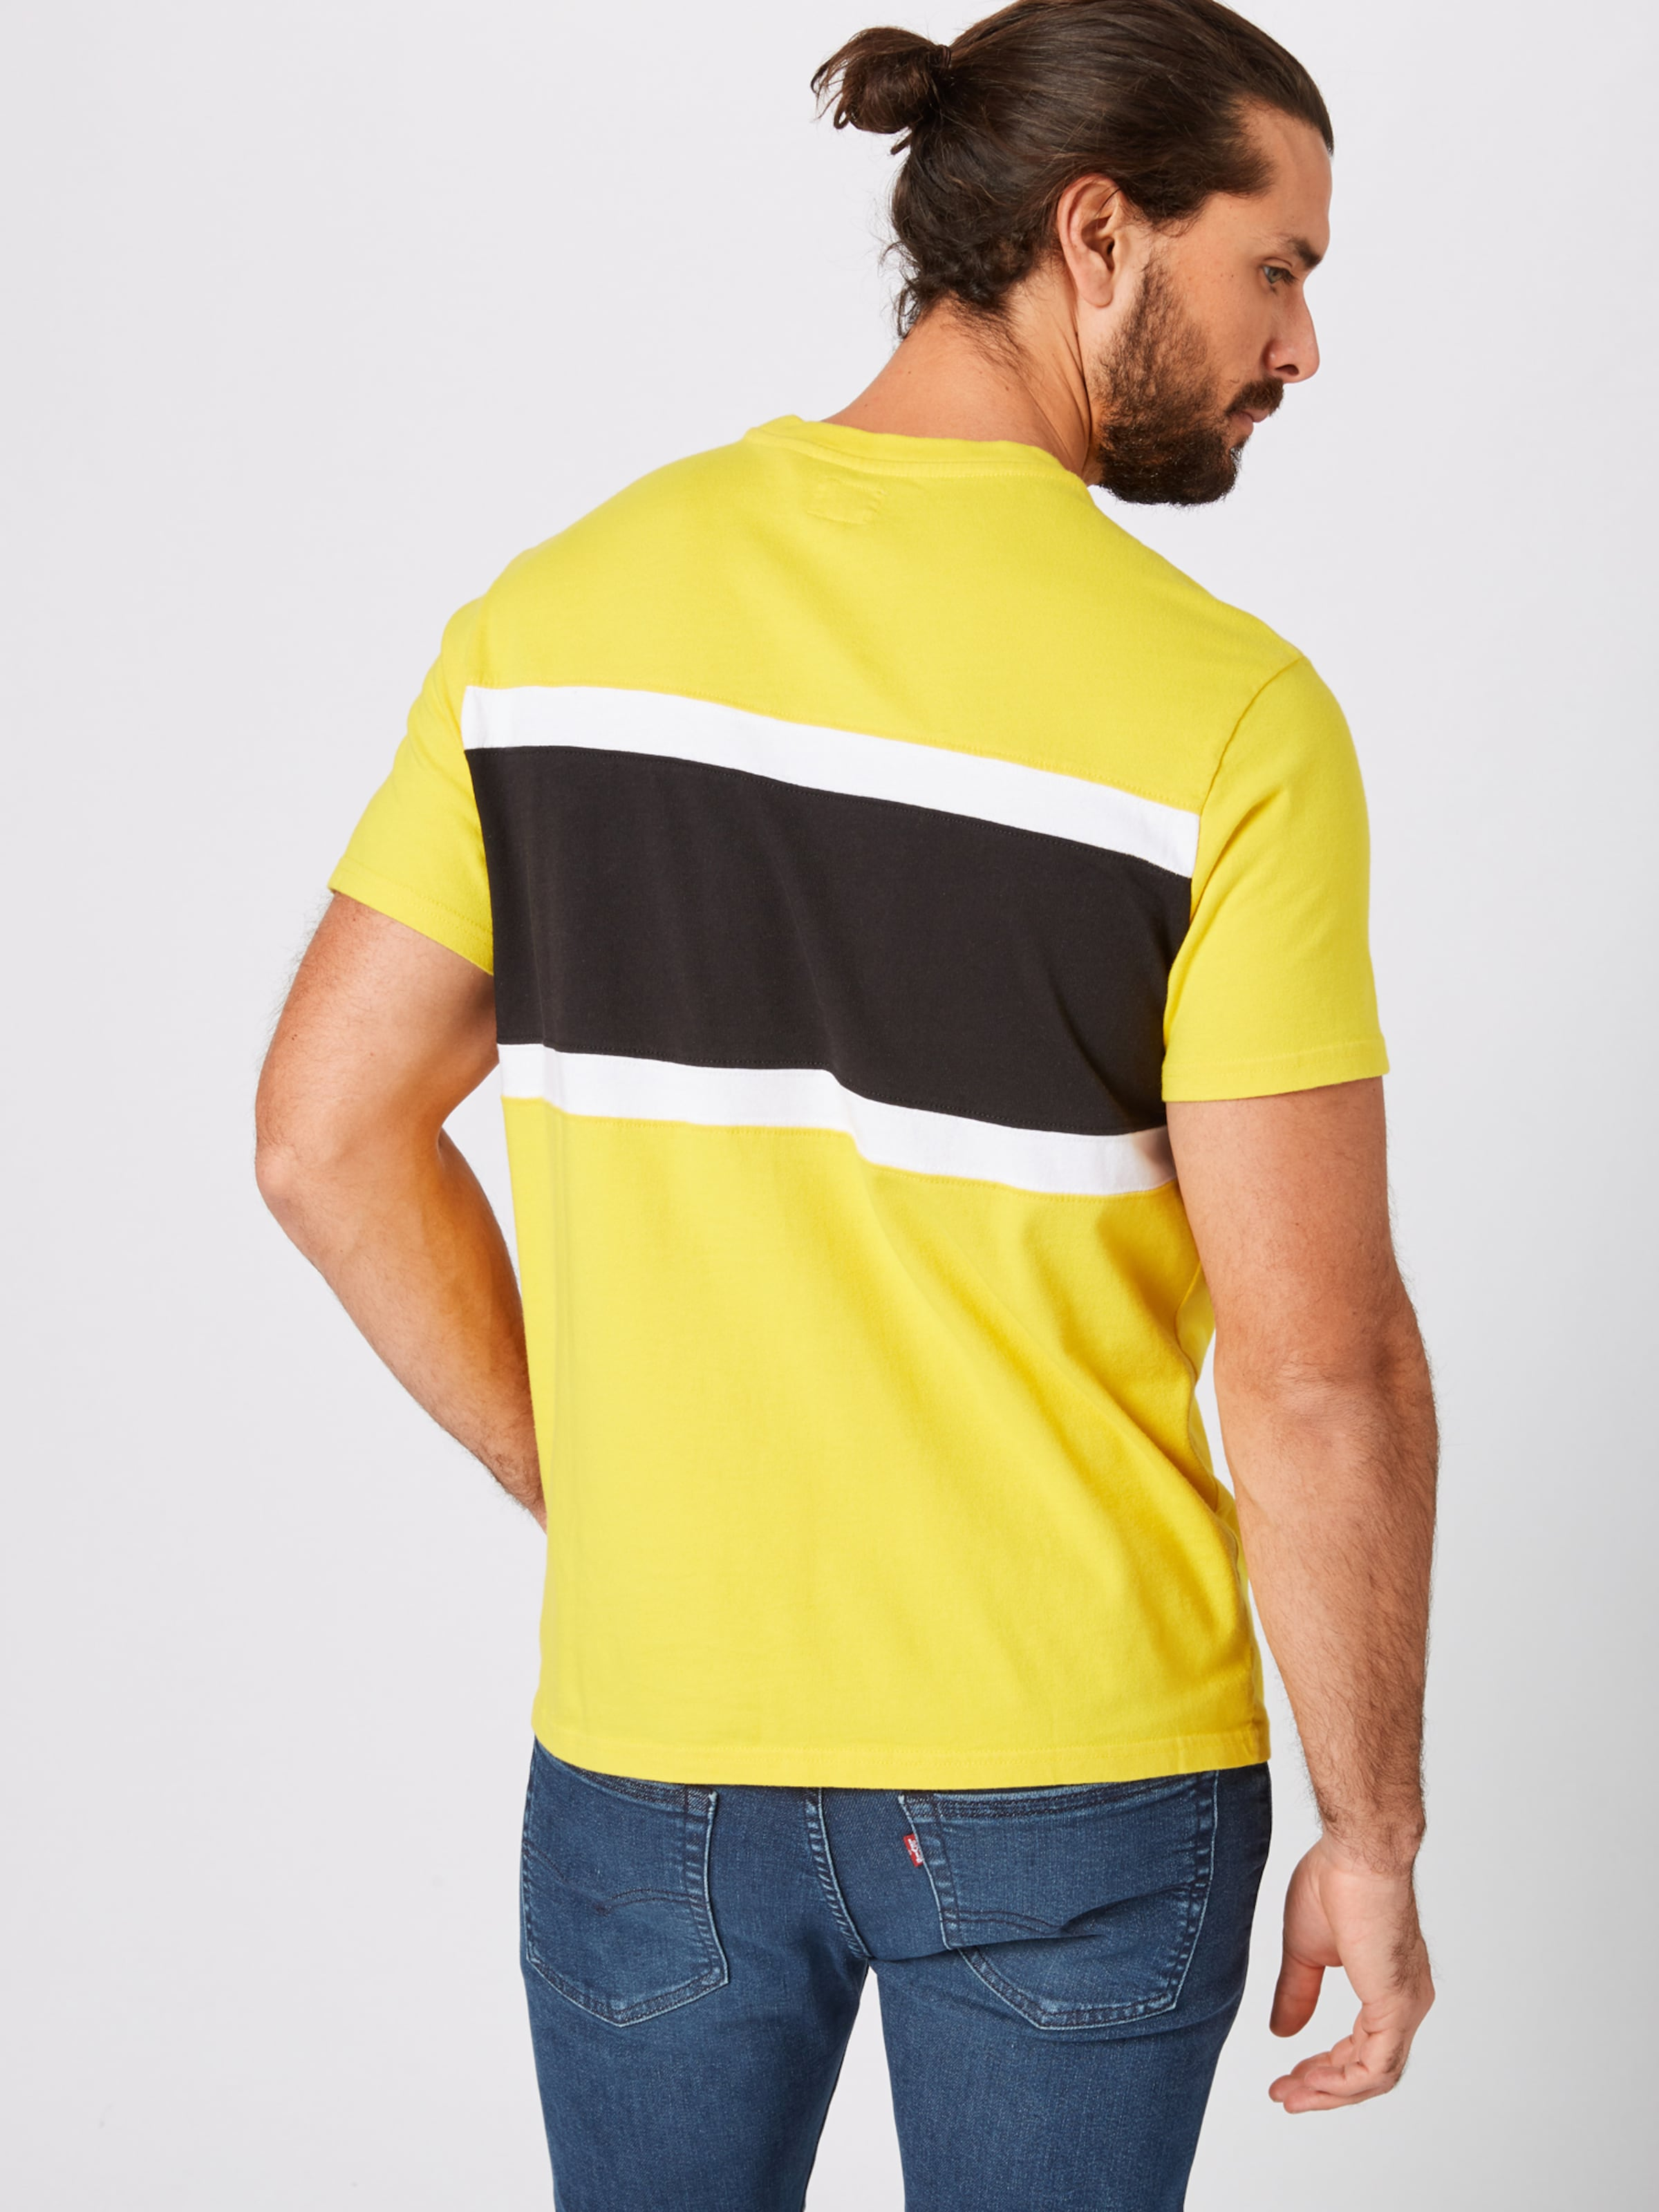 Shirt GelbSchwarz In 'colorblocktee' 'colorblocktee' Shirt In Levi's Levi's bfg7vY6y